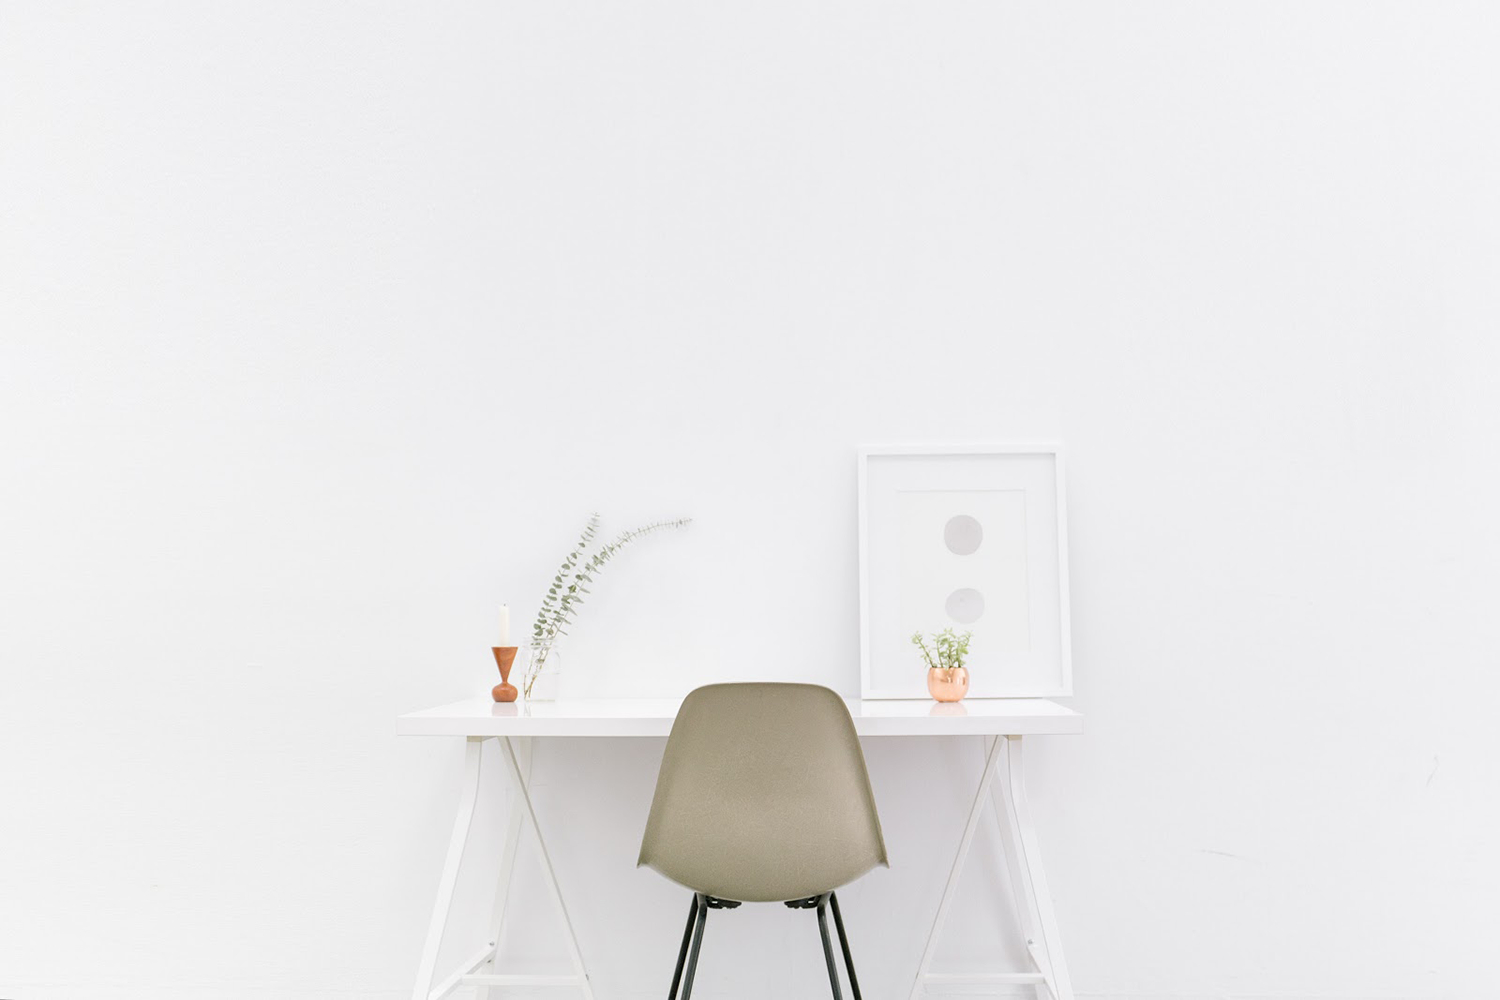 Minimalist living helps productivity and lifestyle